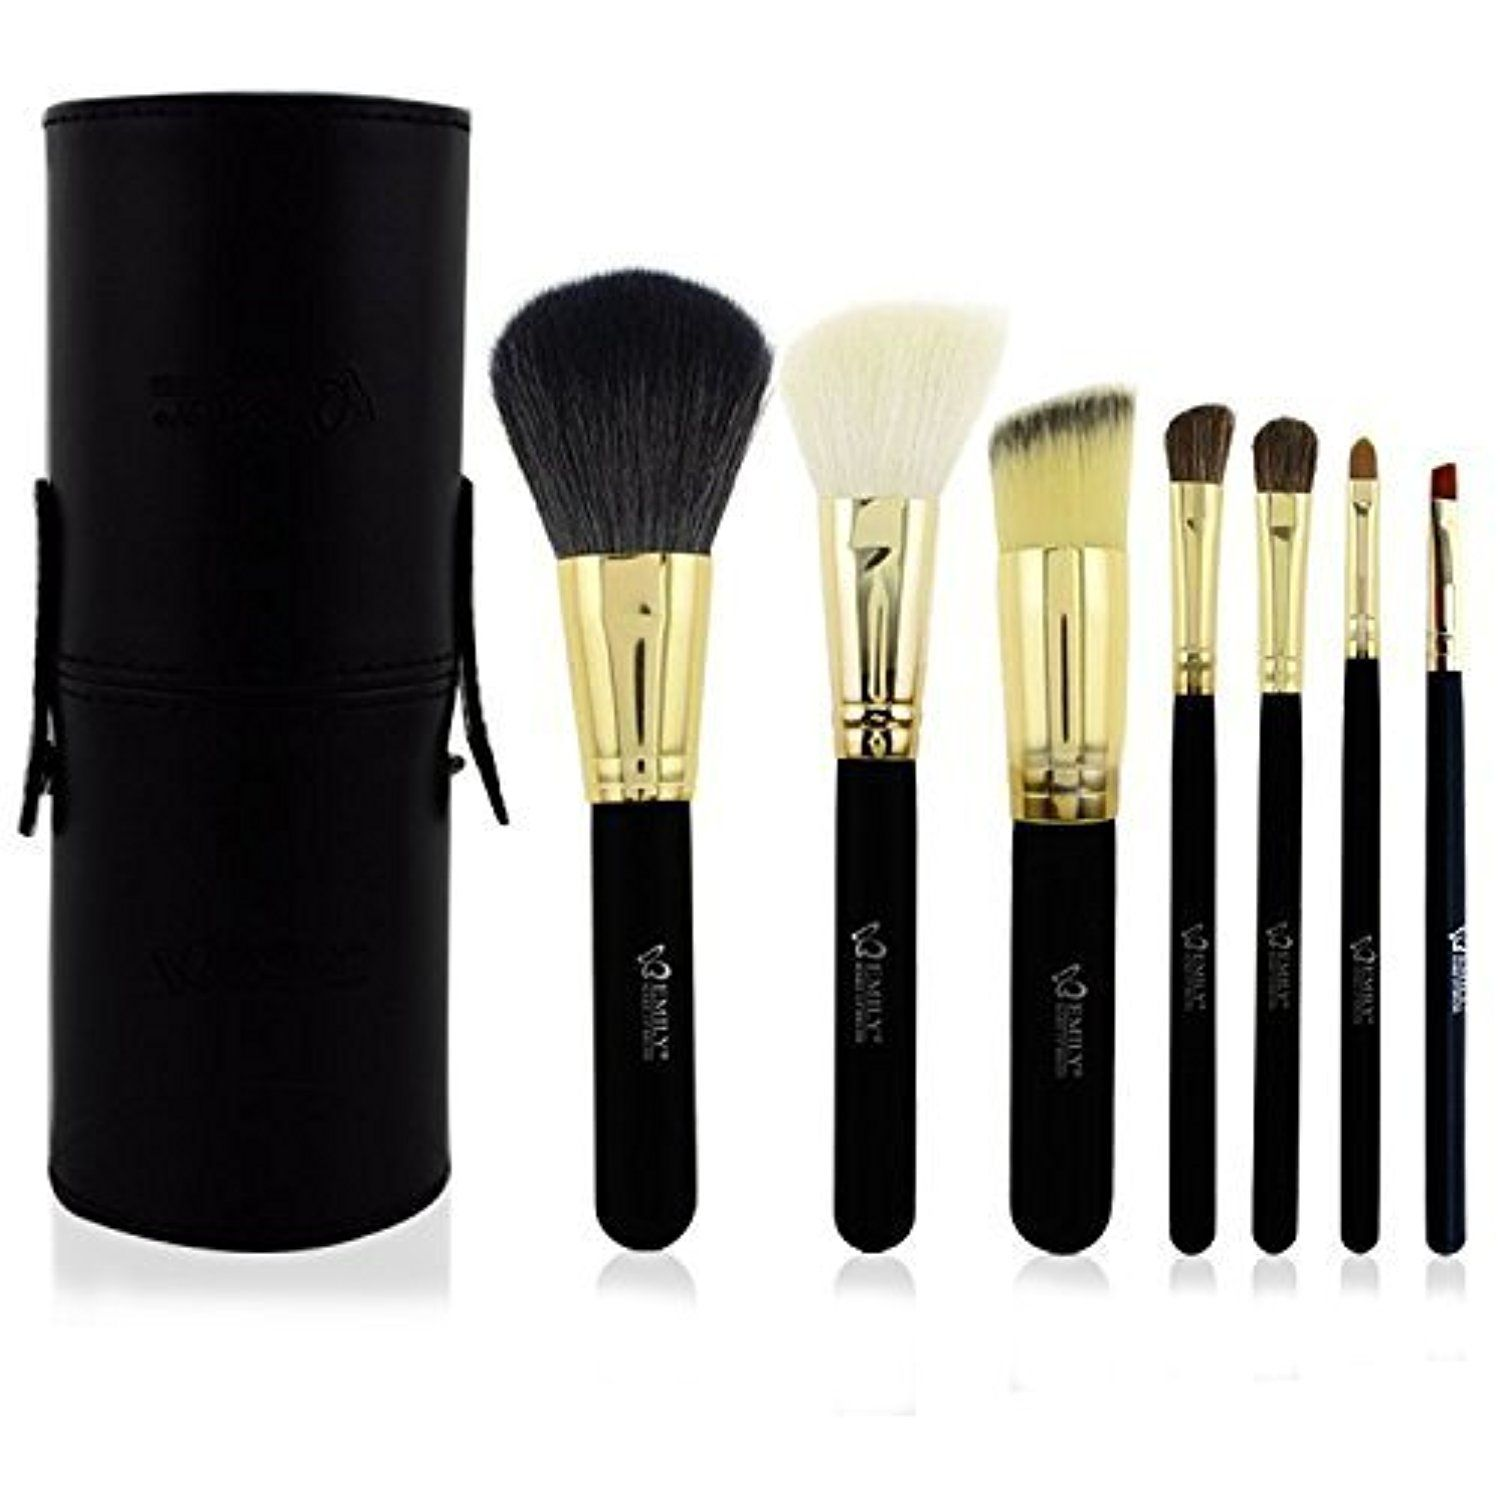 Make 2 Be professional makeup brush set only with storage